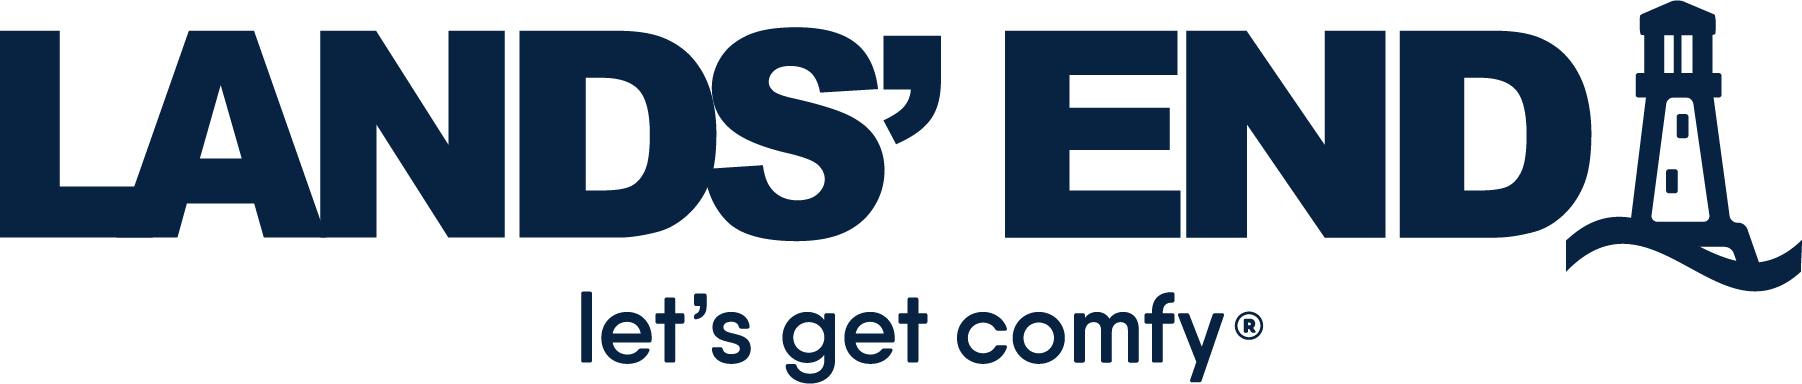 LE21_logo_STANDARD_WITH_STRAPLINE_PMS289.png